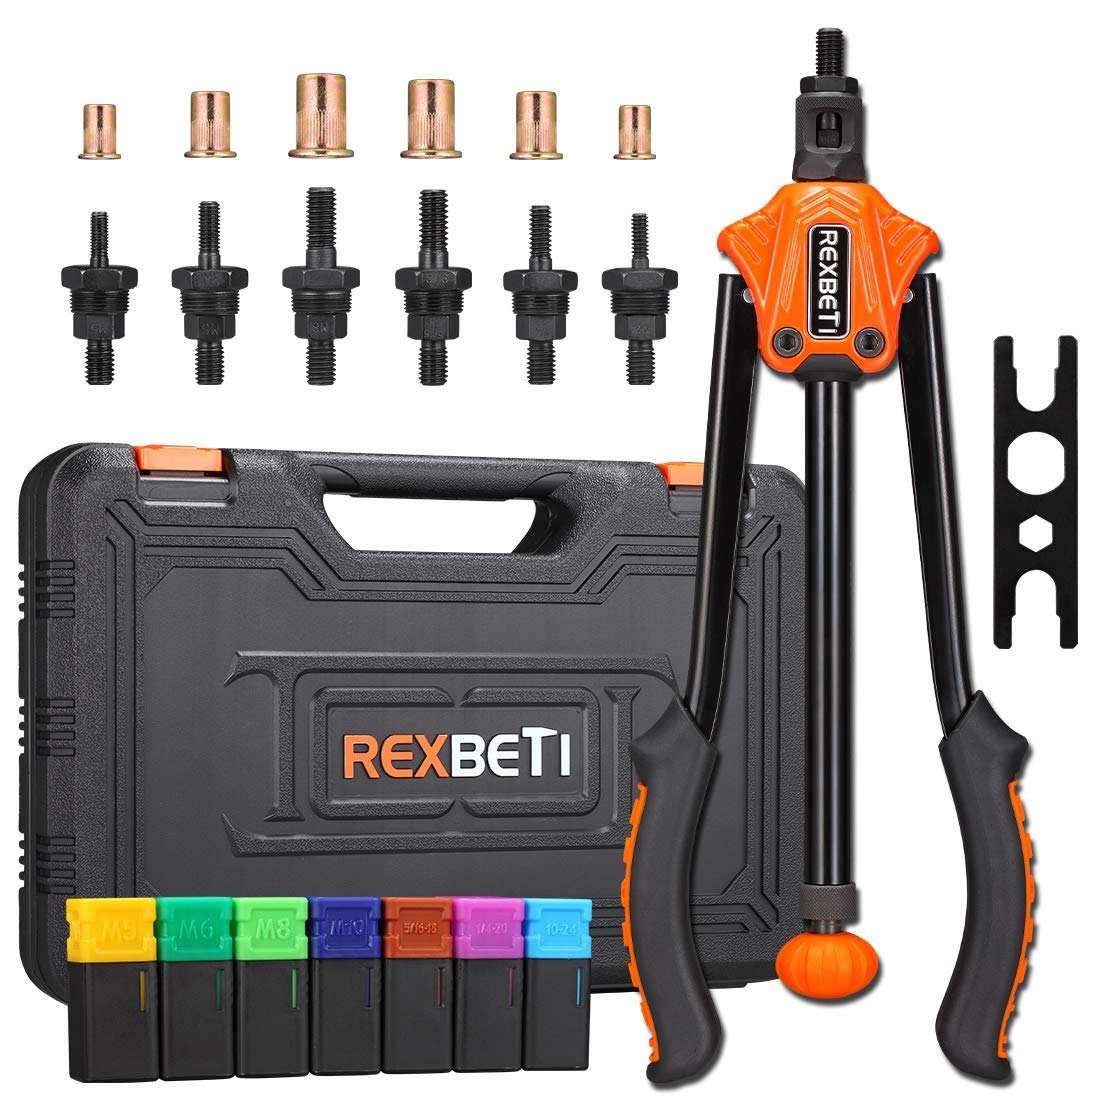 REXBETI 14'' Auto Pumping Rod Rivet Nut Tool, Professional Rivet Setter Kit with 7 Metric & SAE Mandrels and 70pcs Rivnuts, Upgraded Labor-Saving Design, Rugged Carrying Case